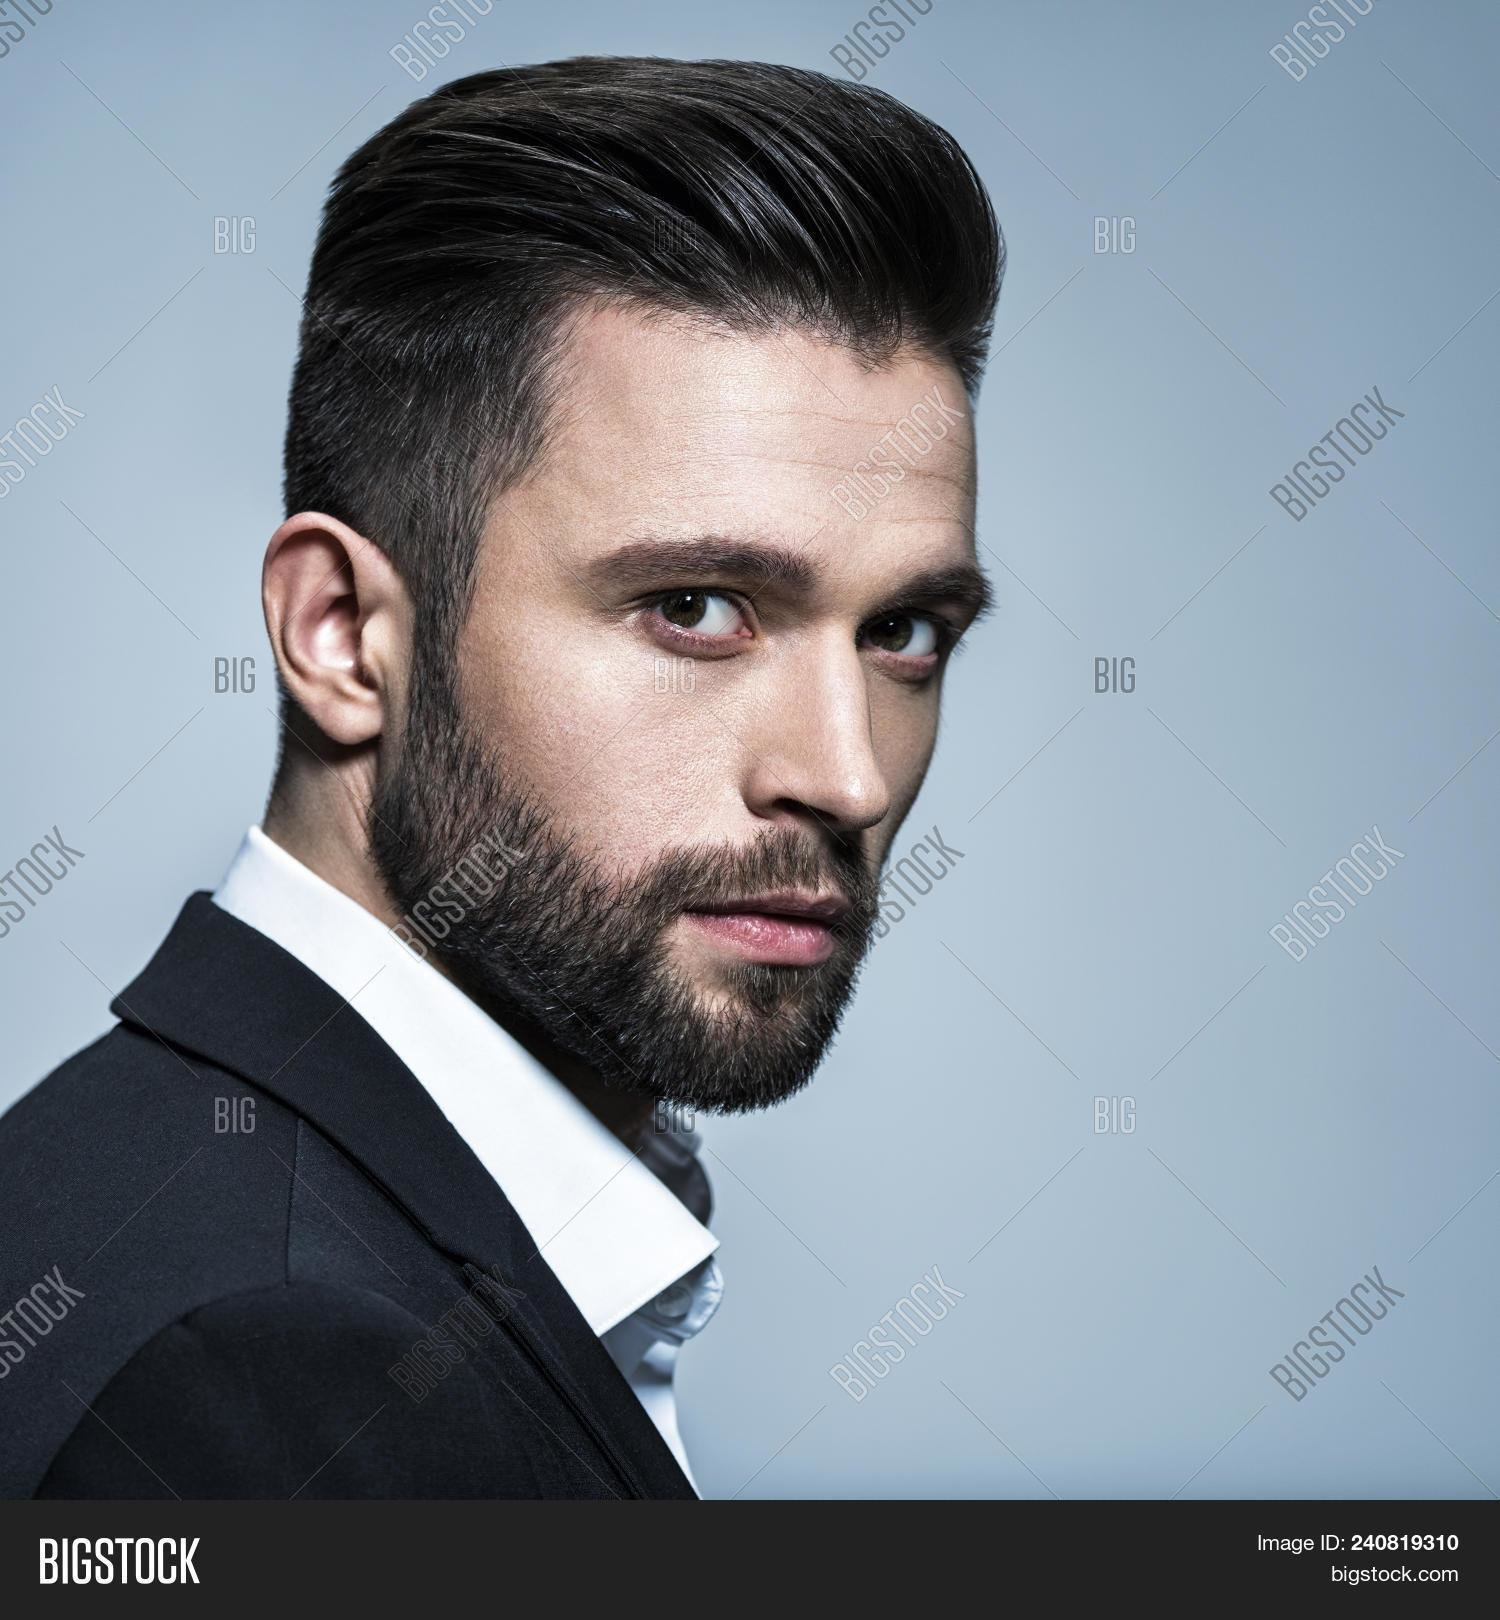 The Best Handsome Man Black Image Photo Free Trial Bigstock Pictures